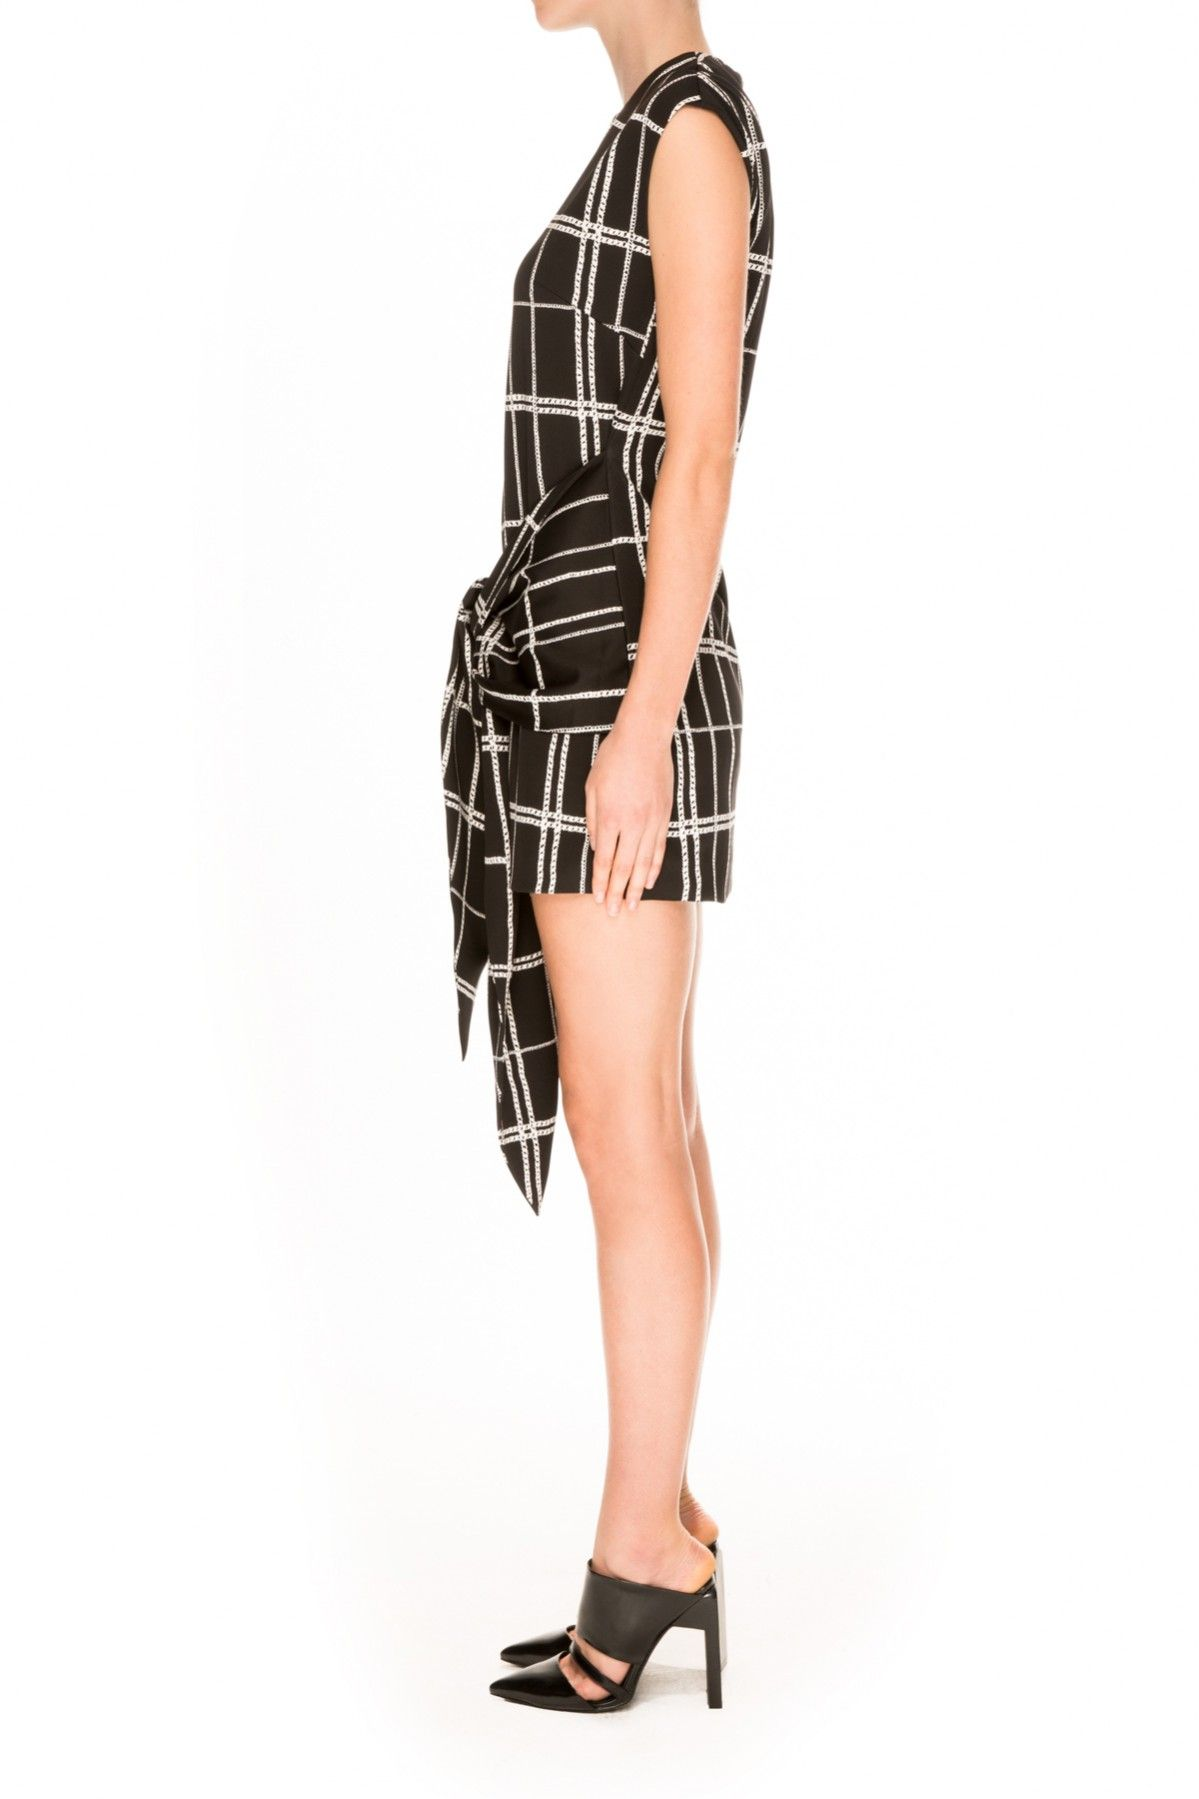 C/MEO Collective HANDS ON DRESS BLACK ROPE - BNKR